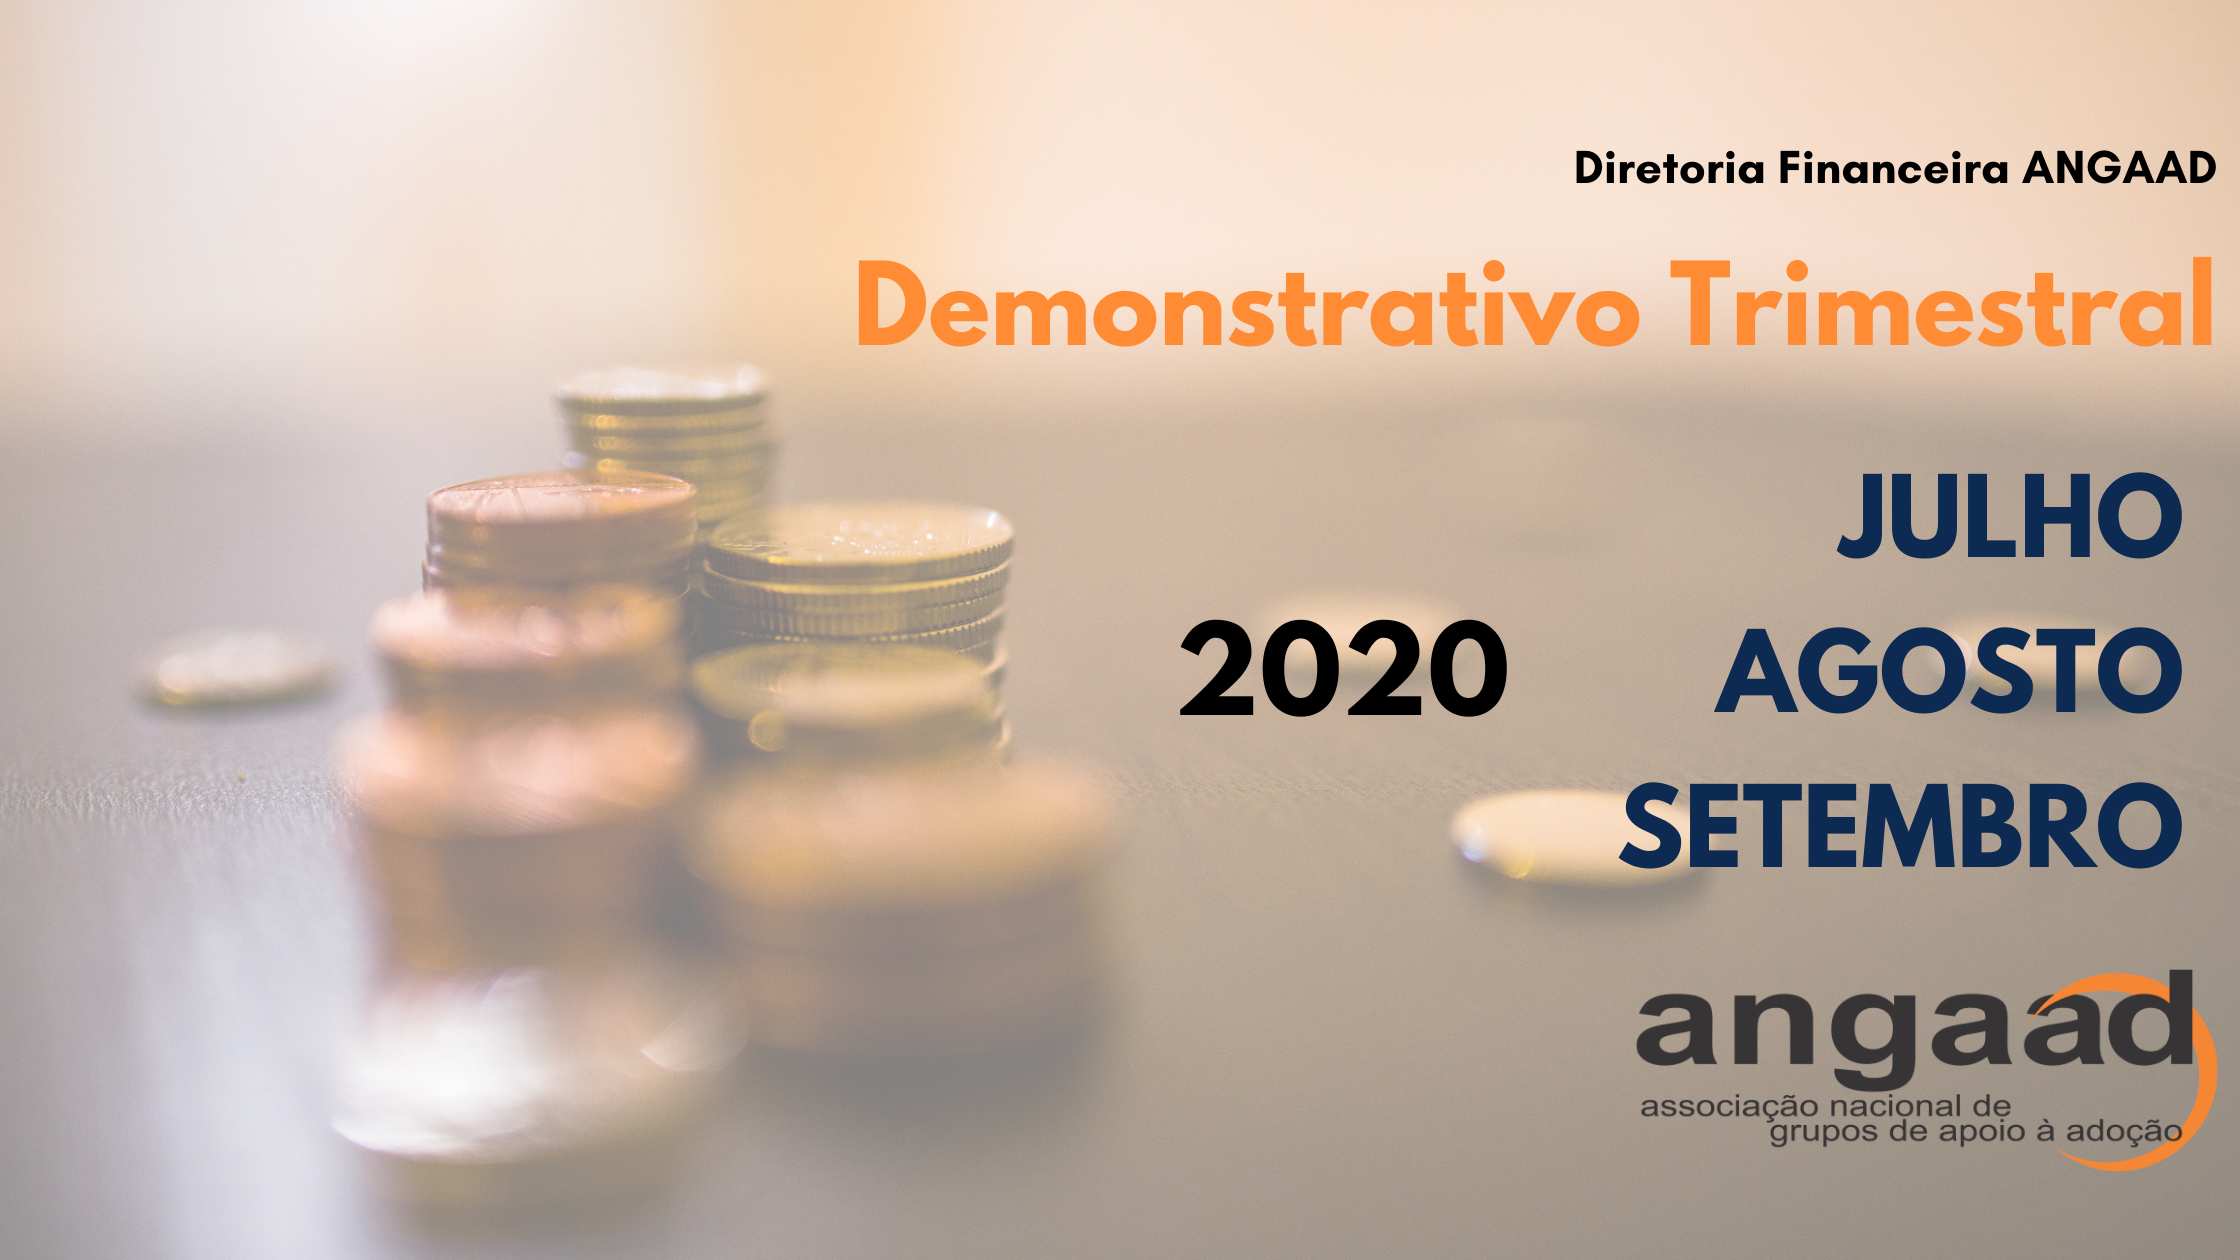 Demonstrativos Trimestrais – jul., ago., e set. 2020